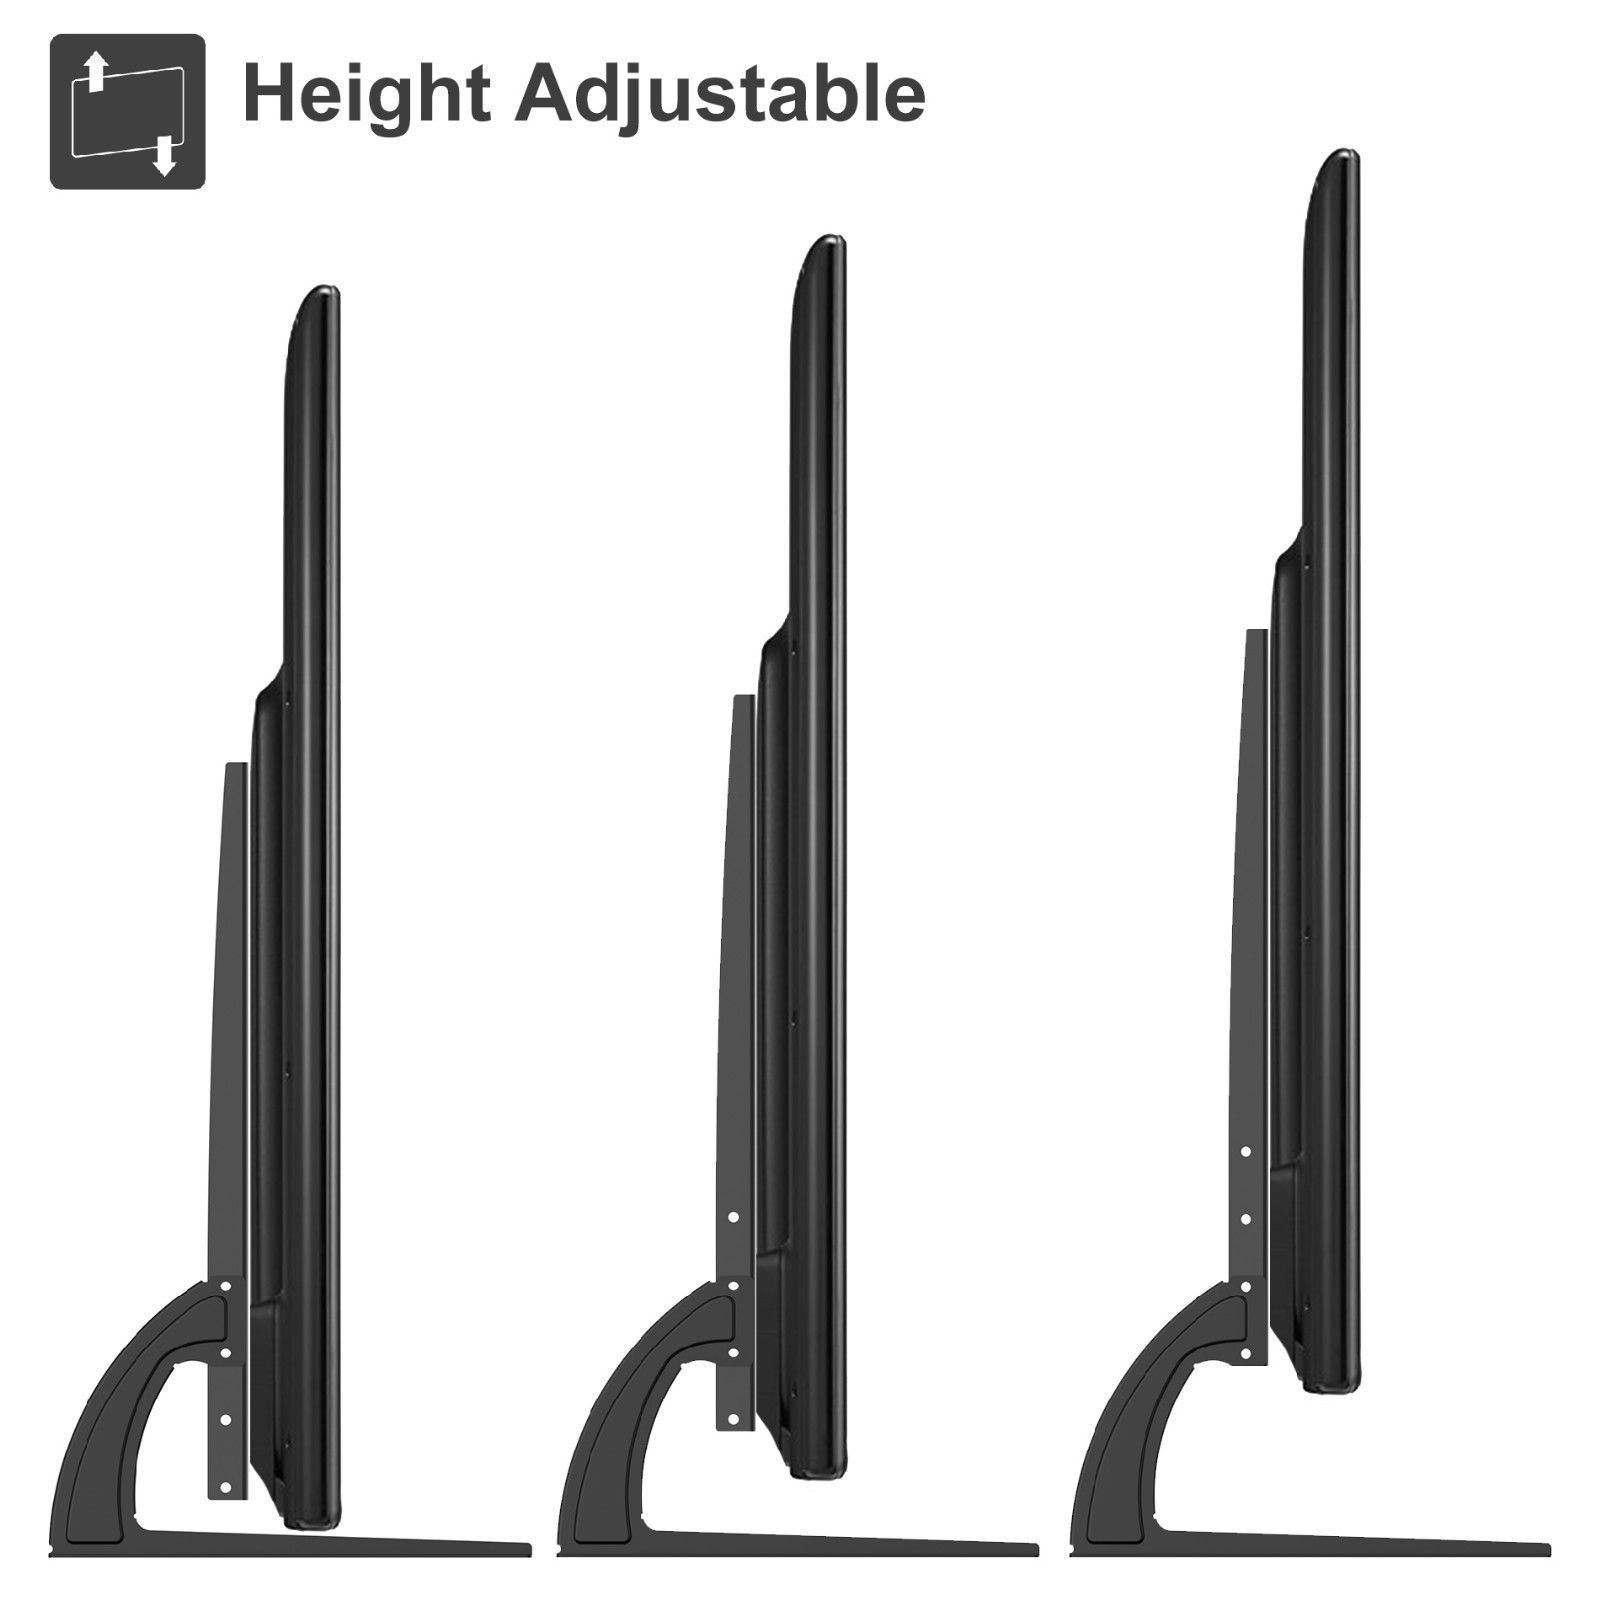 Universal Table Top TV Stand Legs for Vizio E551d-A0 Height Adjustable